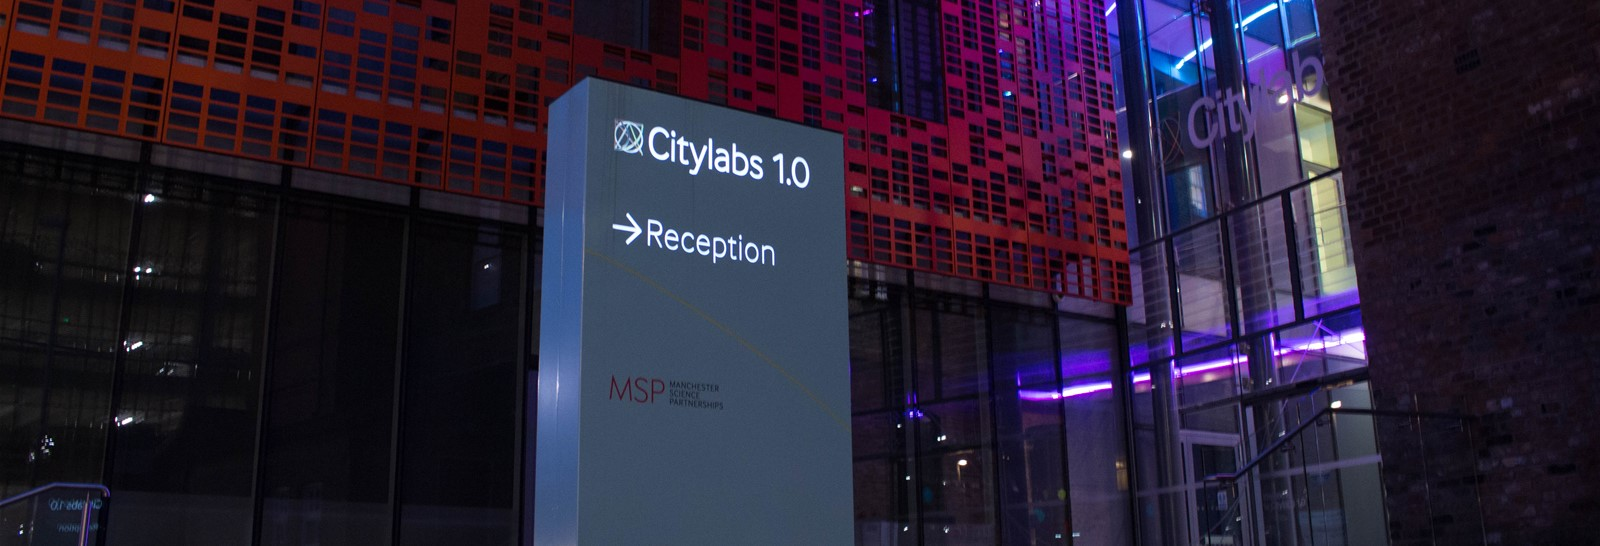 City Labs directional sign by Signs Express (Manchester)